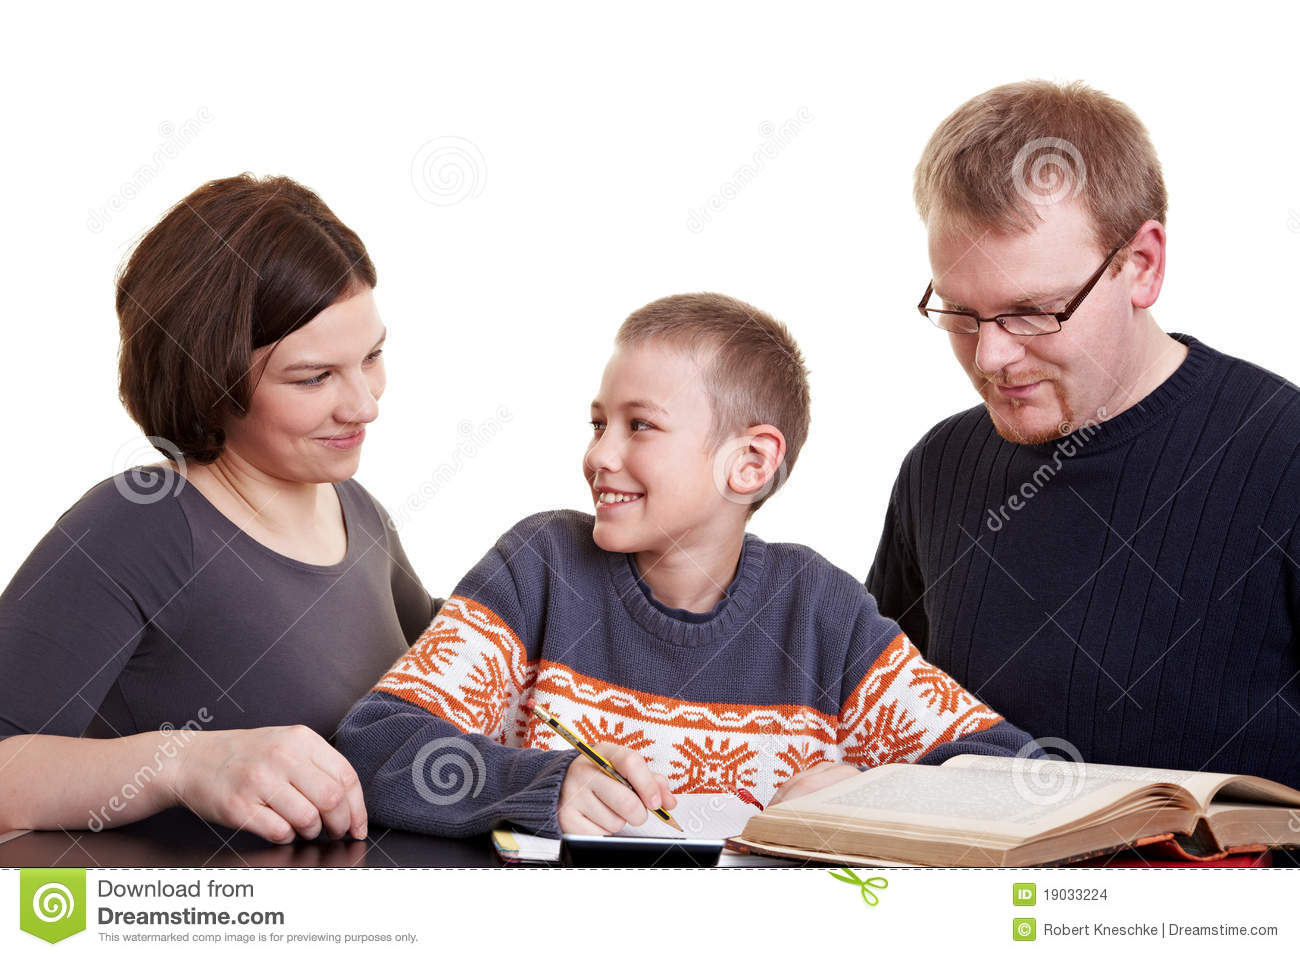 thesis statement for single parent families